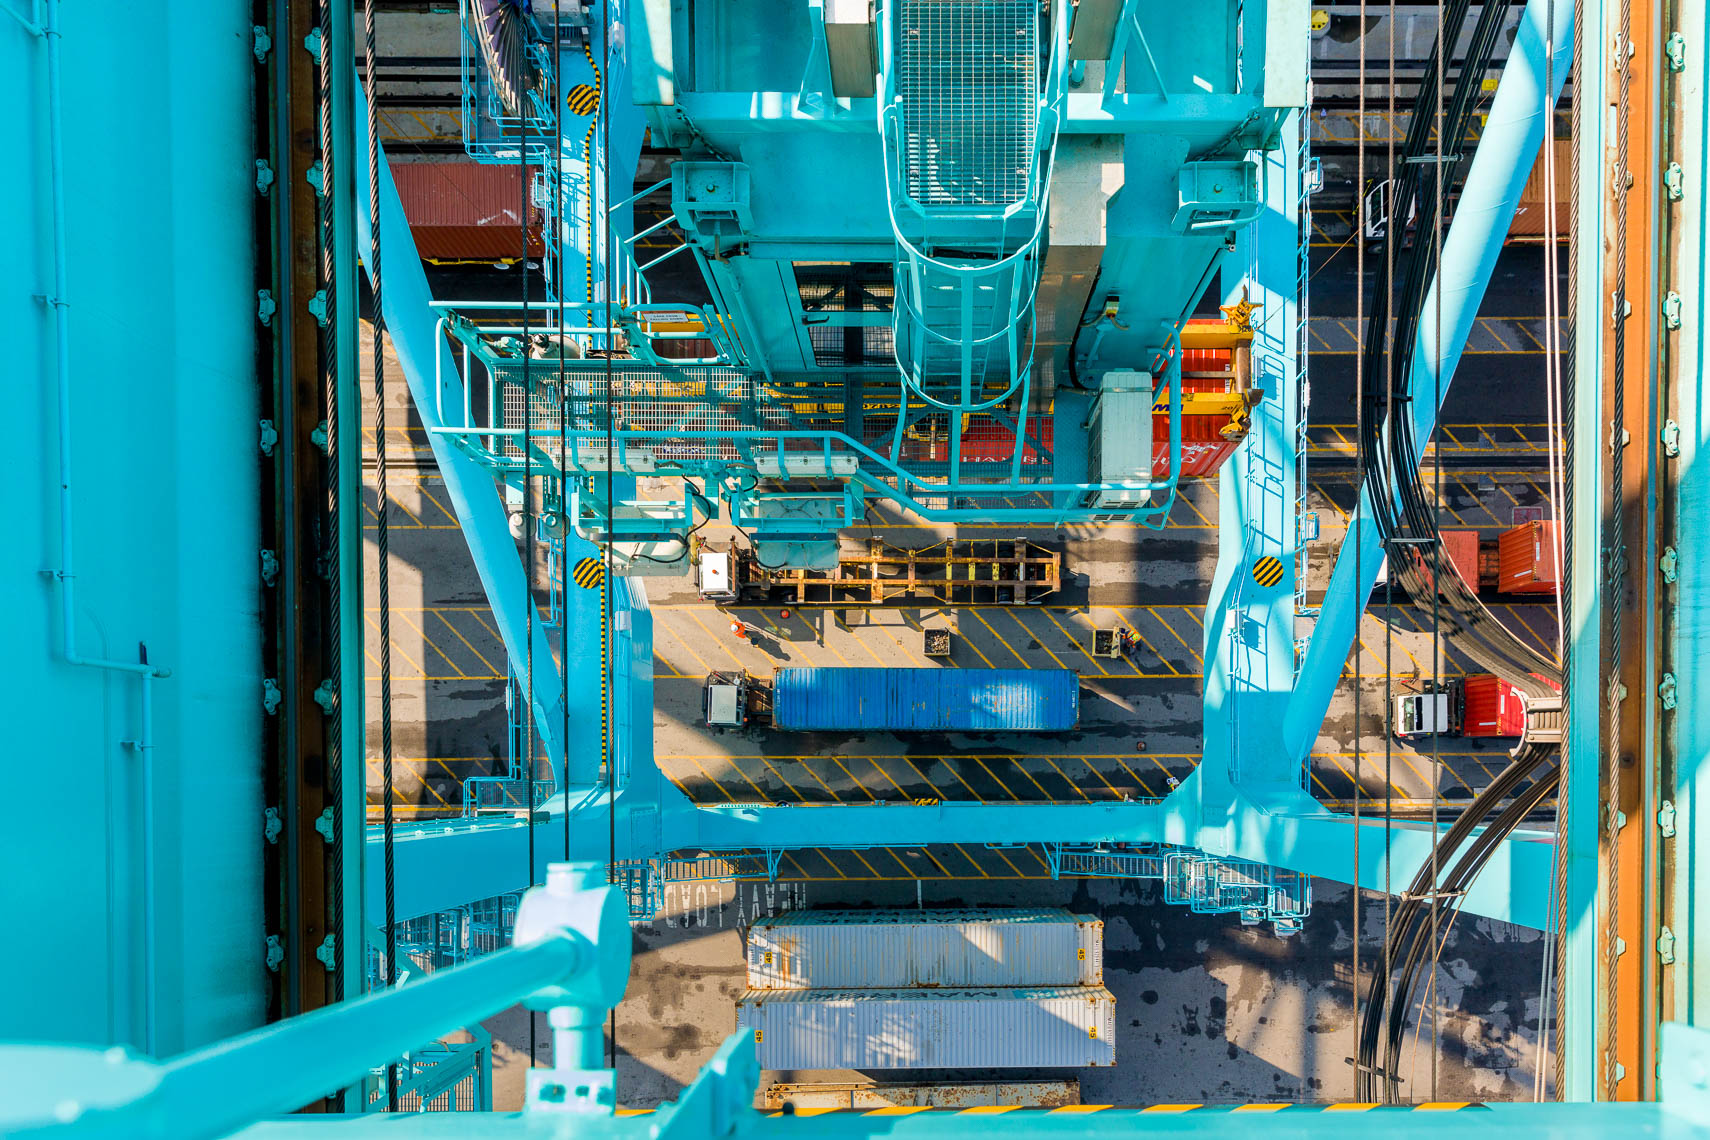 Overhead view of a crane loading containters onto a cargo ship at JAXPORT